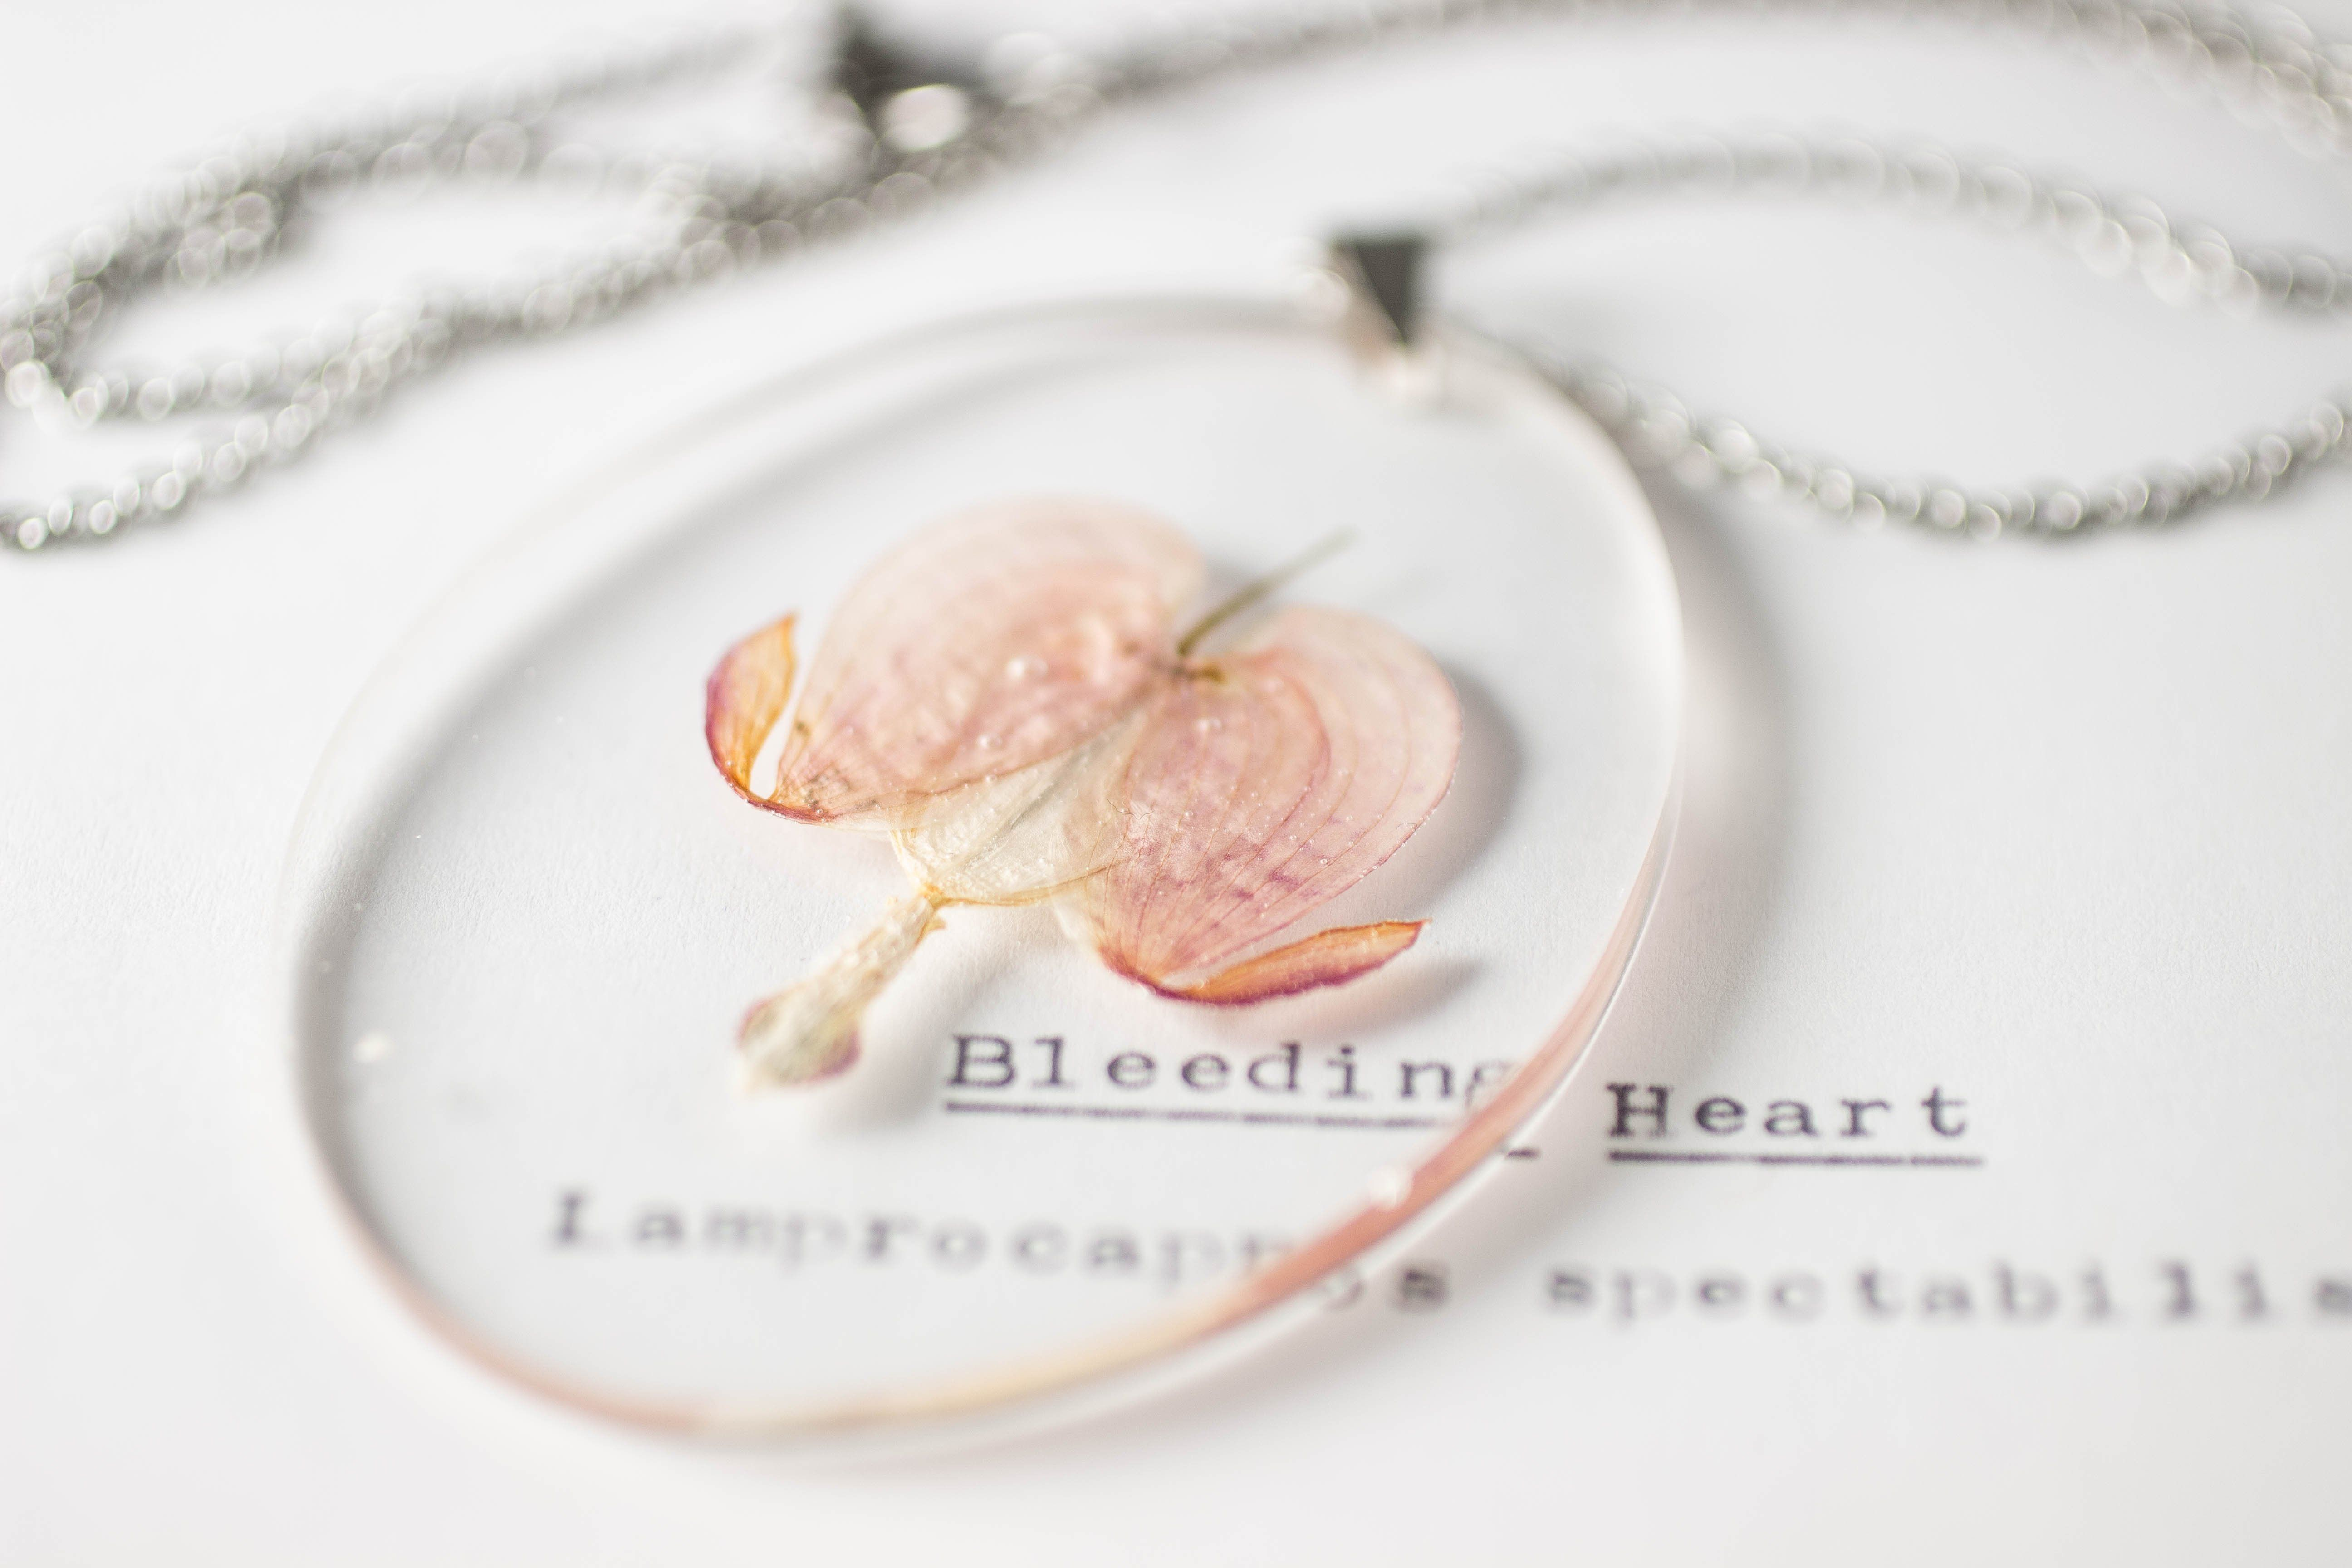 This Pendant Contains One Small Specimen Of Bleeding Heart Lamprocapnos Spectabilis Pressed And Preserved In A Pane Botanical Jewelry Bleeding Heart Pendant